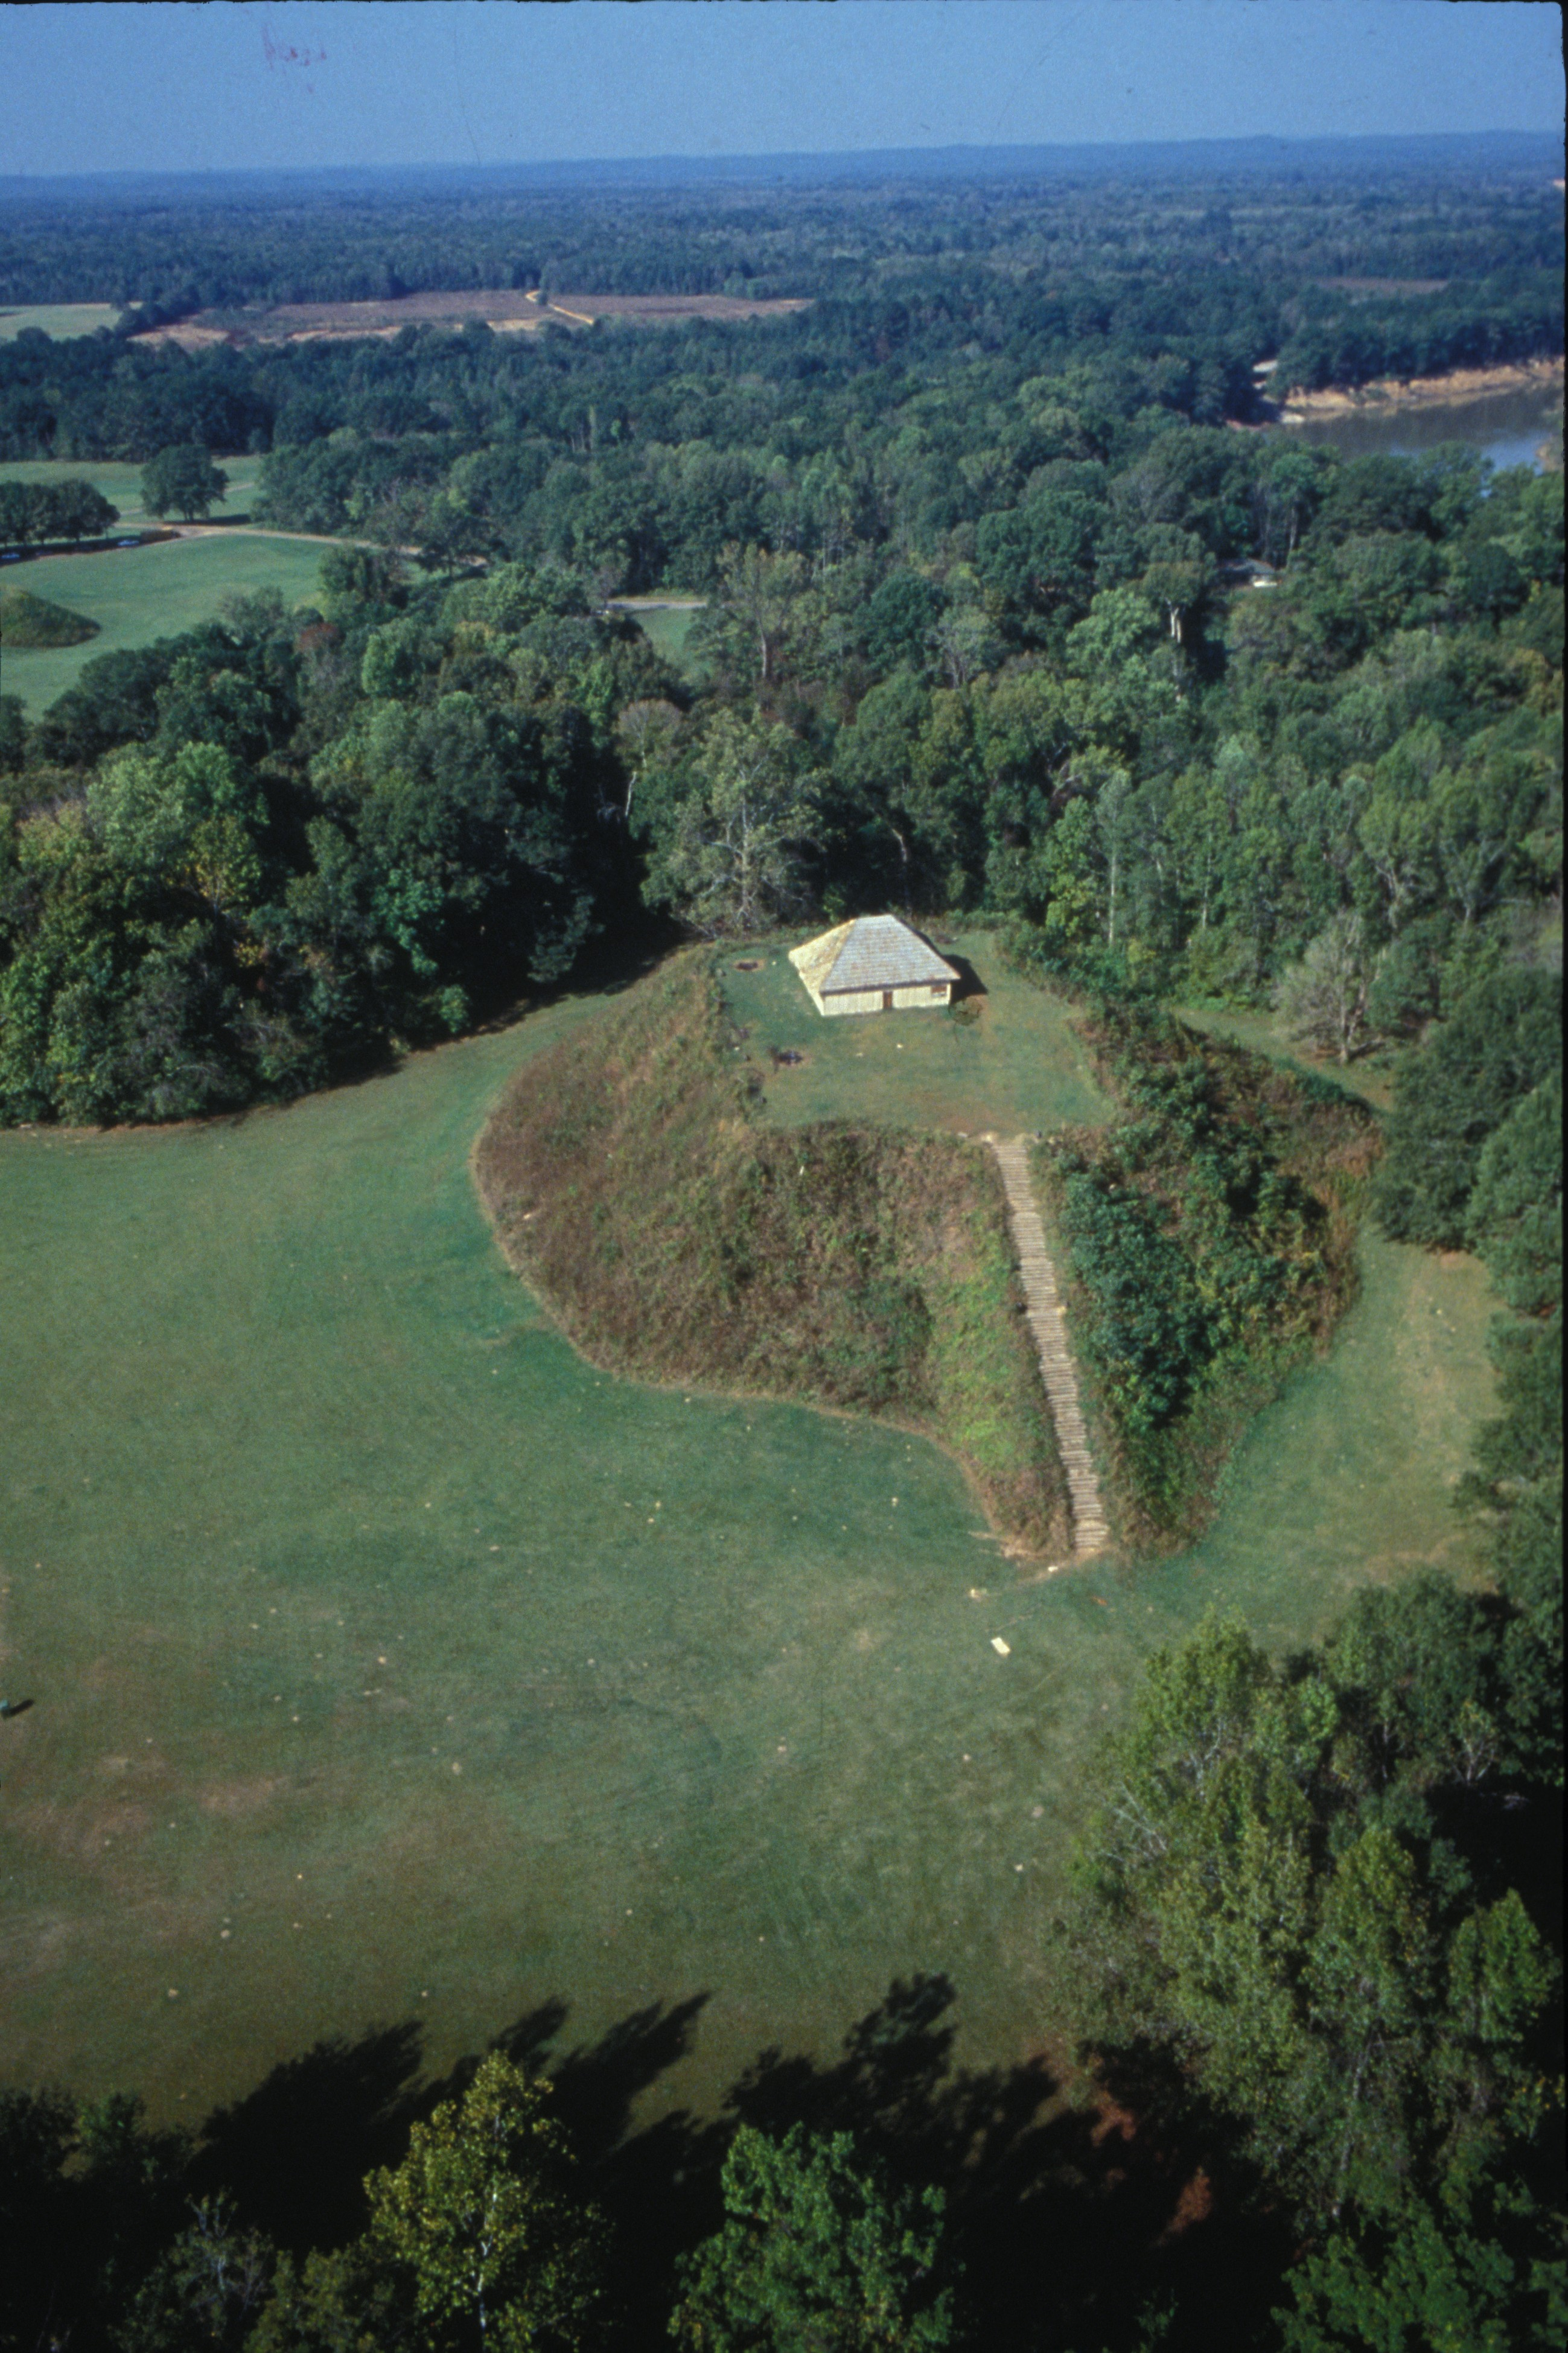 https://alabama-travel.s3.amazonaws.com/partners-uploads/photo/image/57869e694771c955d40000bb/aerial_view_of_mound_b___alabama_s_tallest_mound.jpg